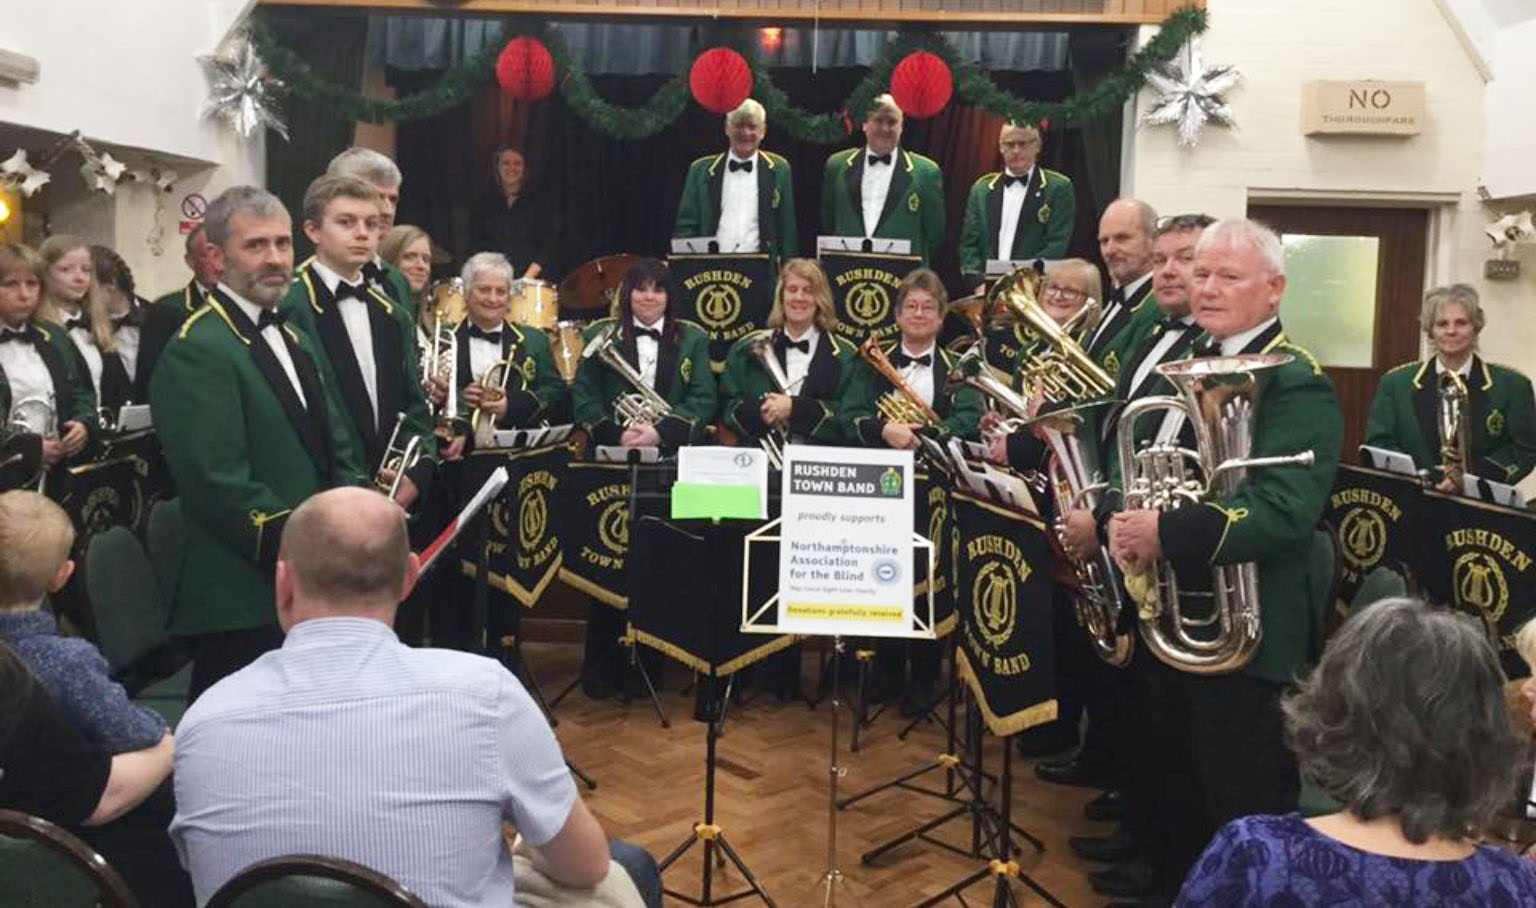 rushden-town-band-4th-december-2016-f